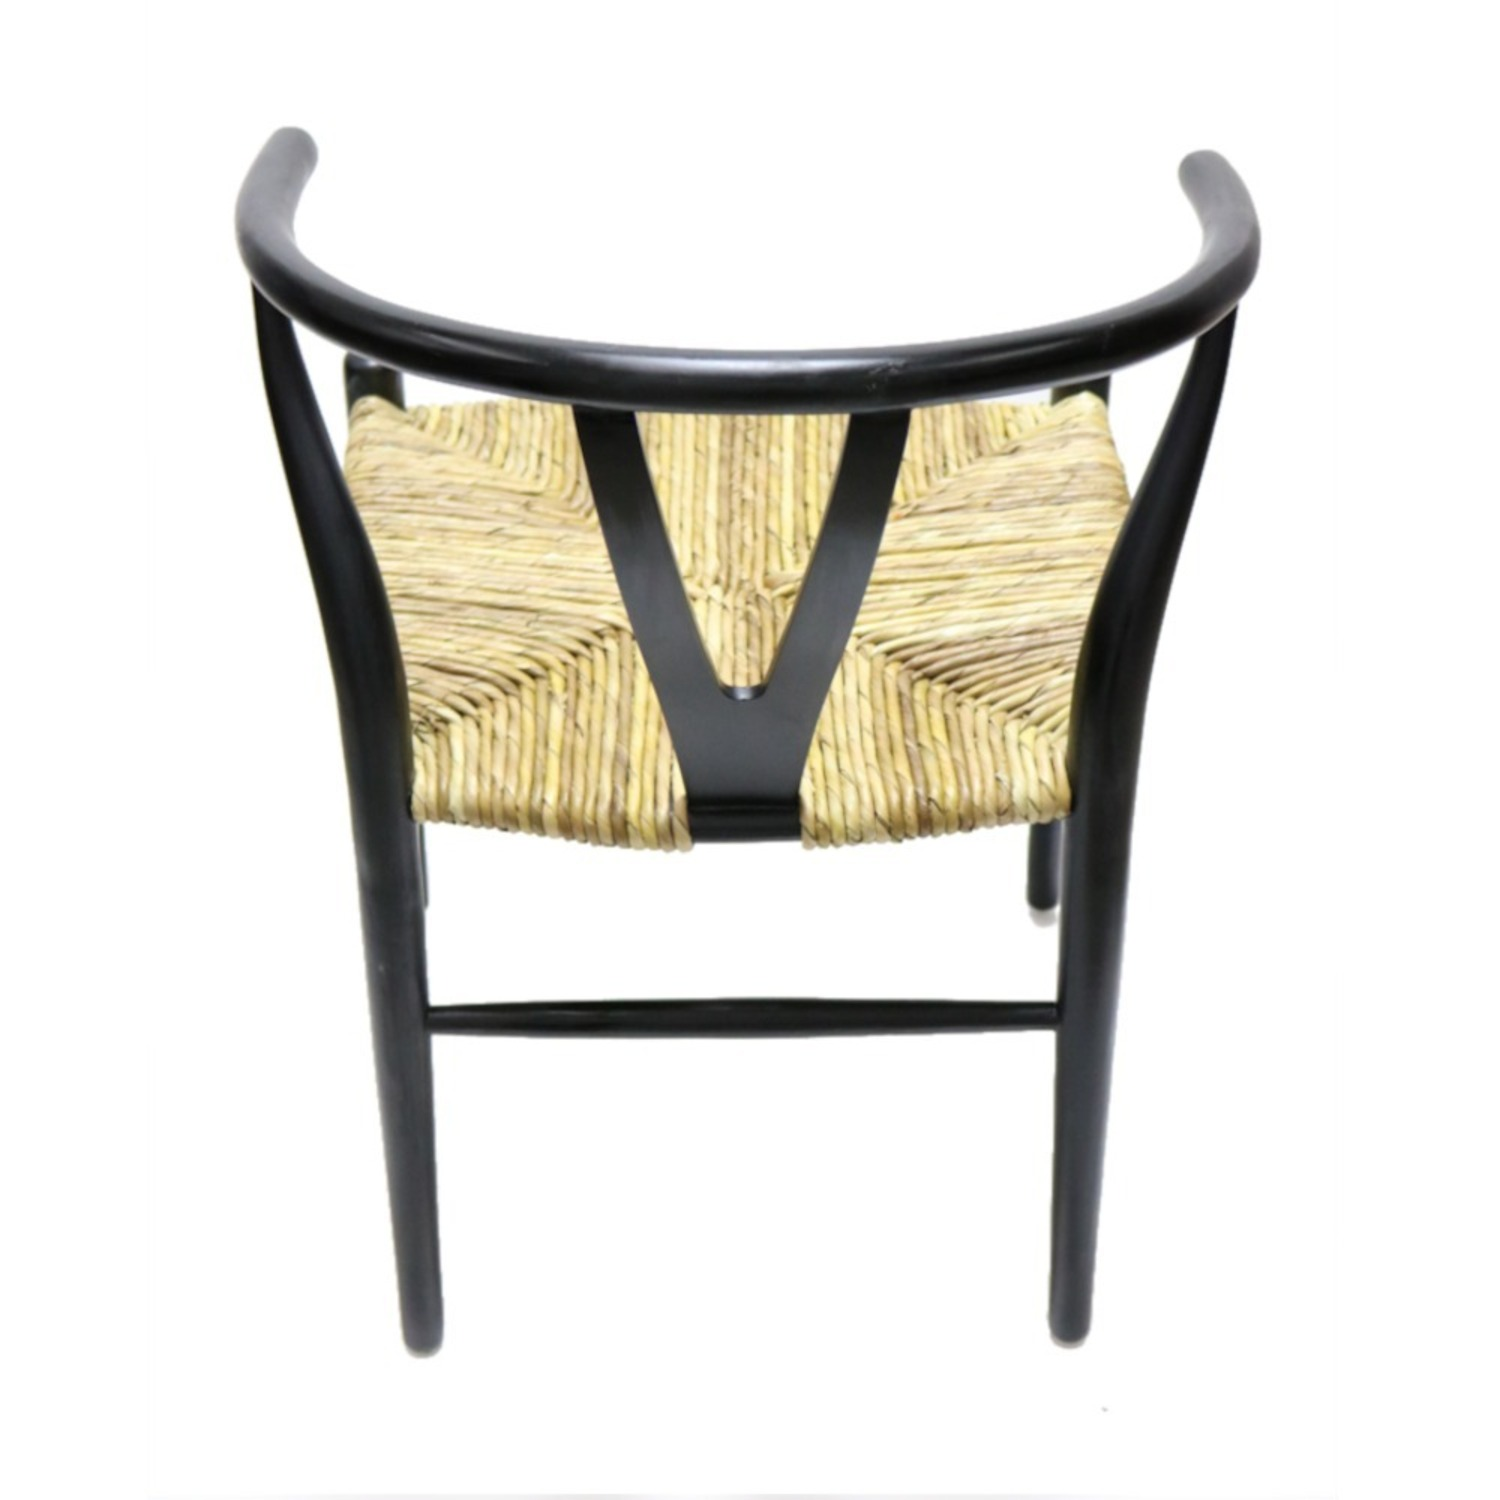 Dining Chair In Black Frame & Natural Hemp Seat - image-7